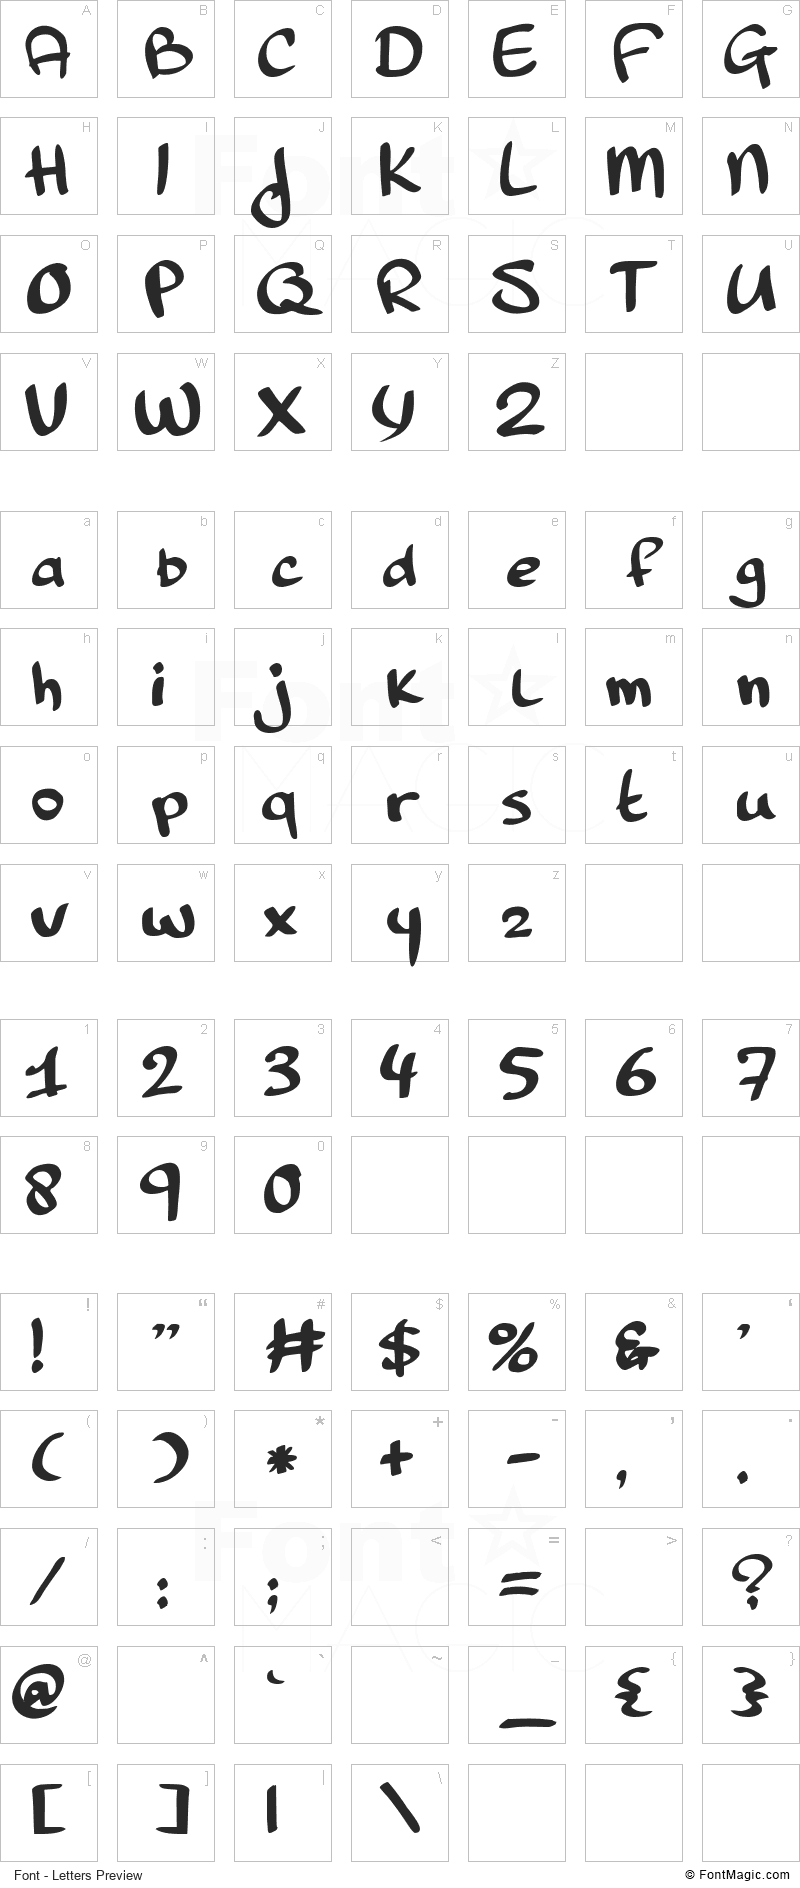 Pinda Font - All Latters Preview Chart